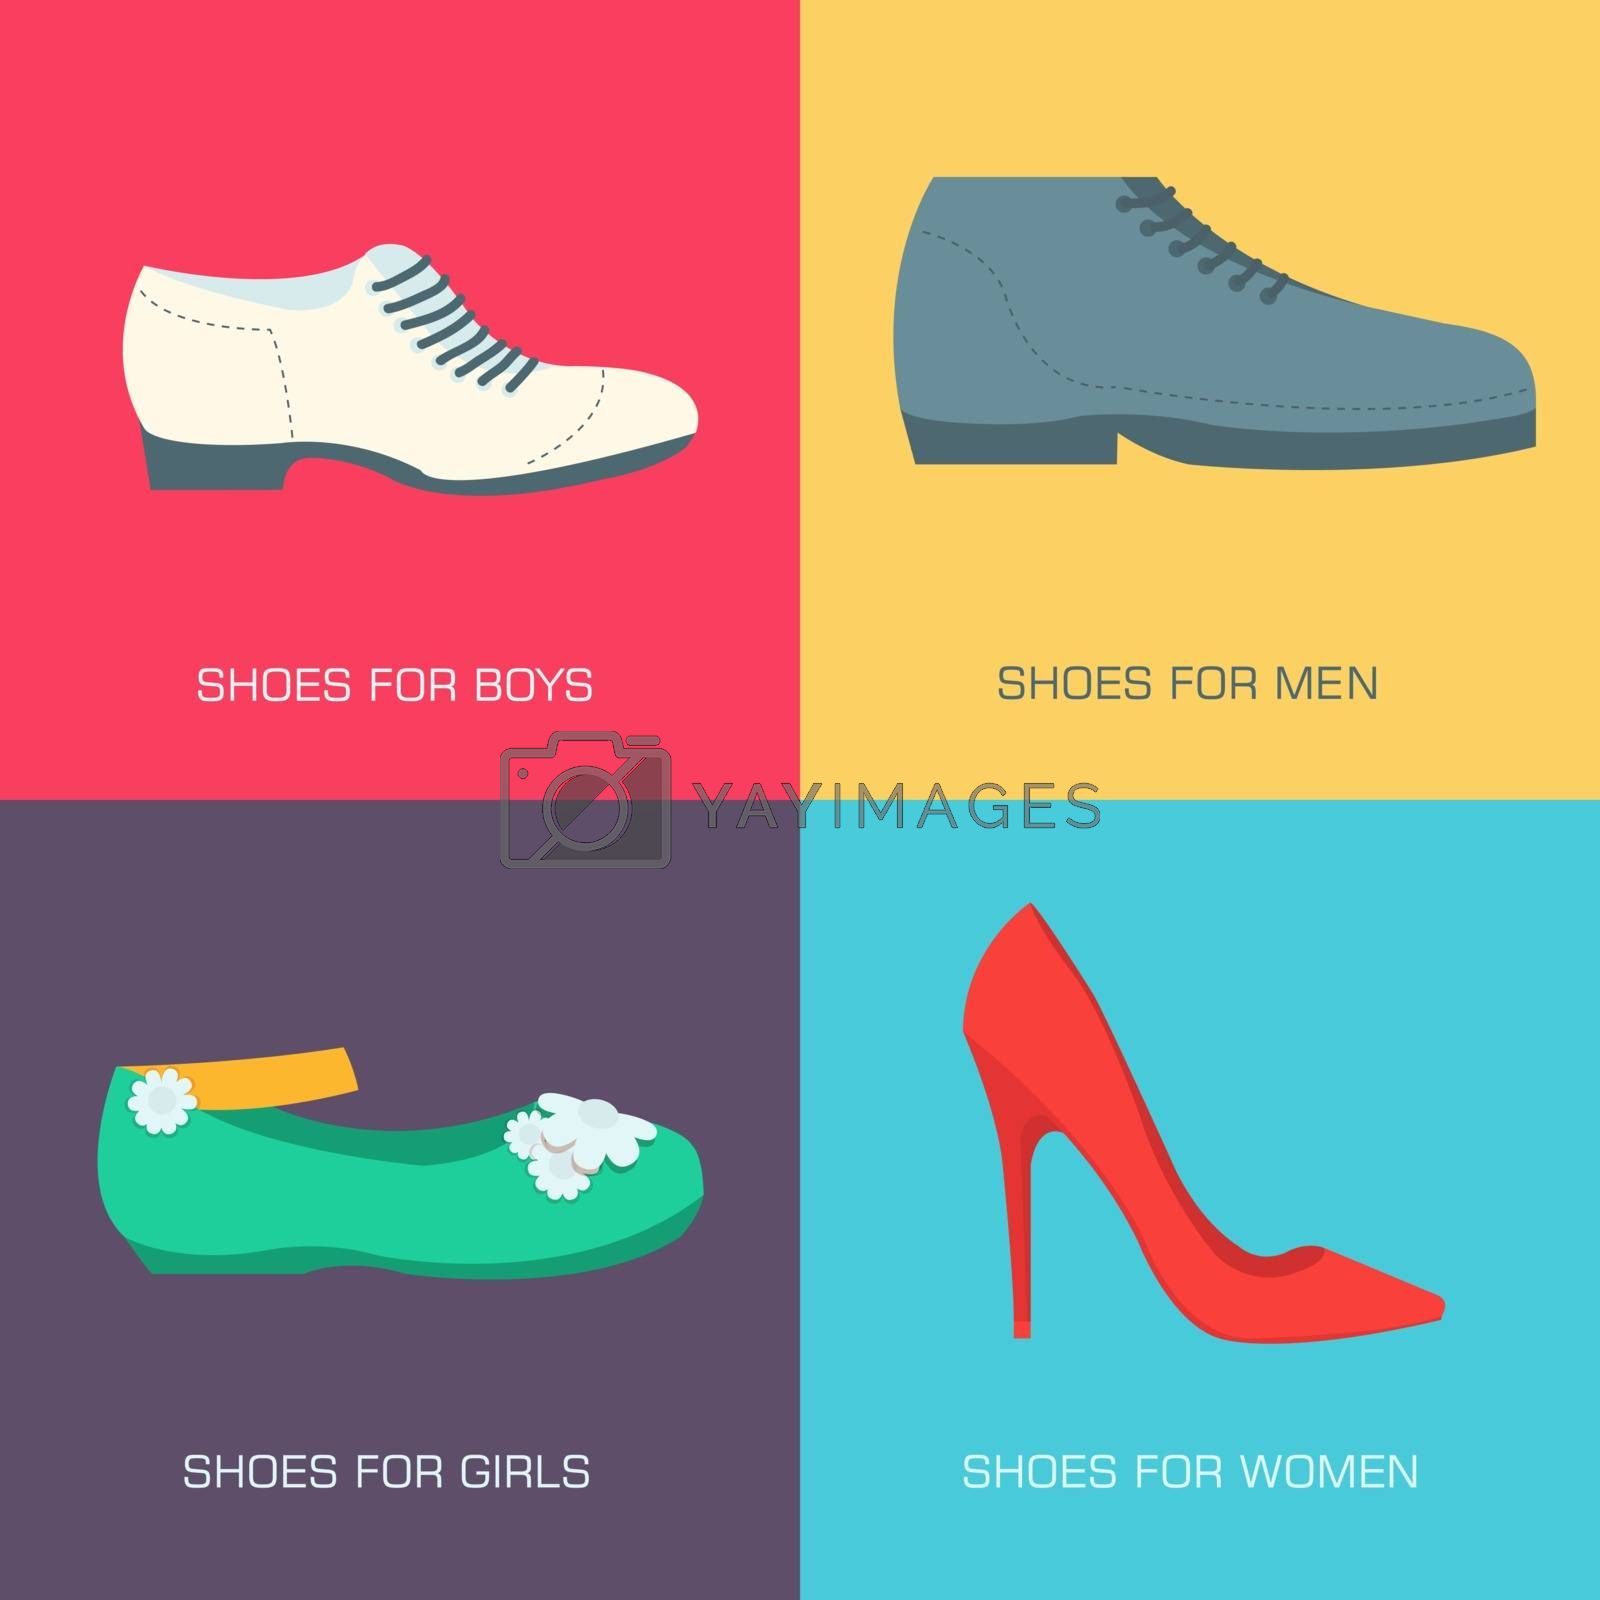 fashion shoes for family on flat style. Vector illustration concept banners. Template for website and mobile appliance .